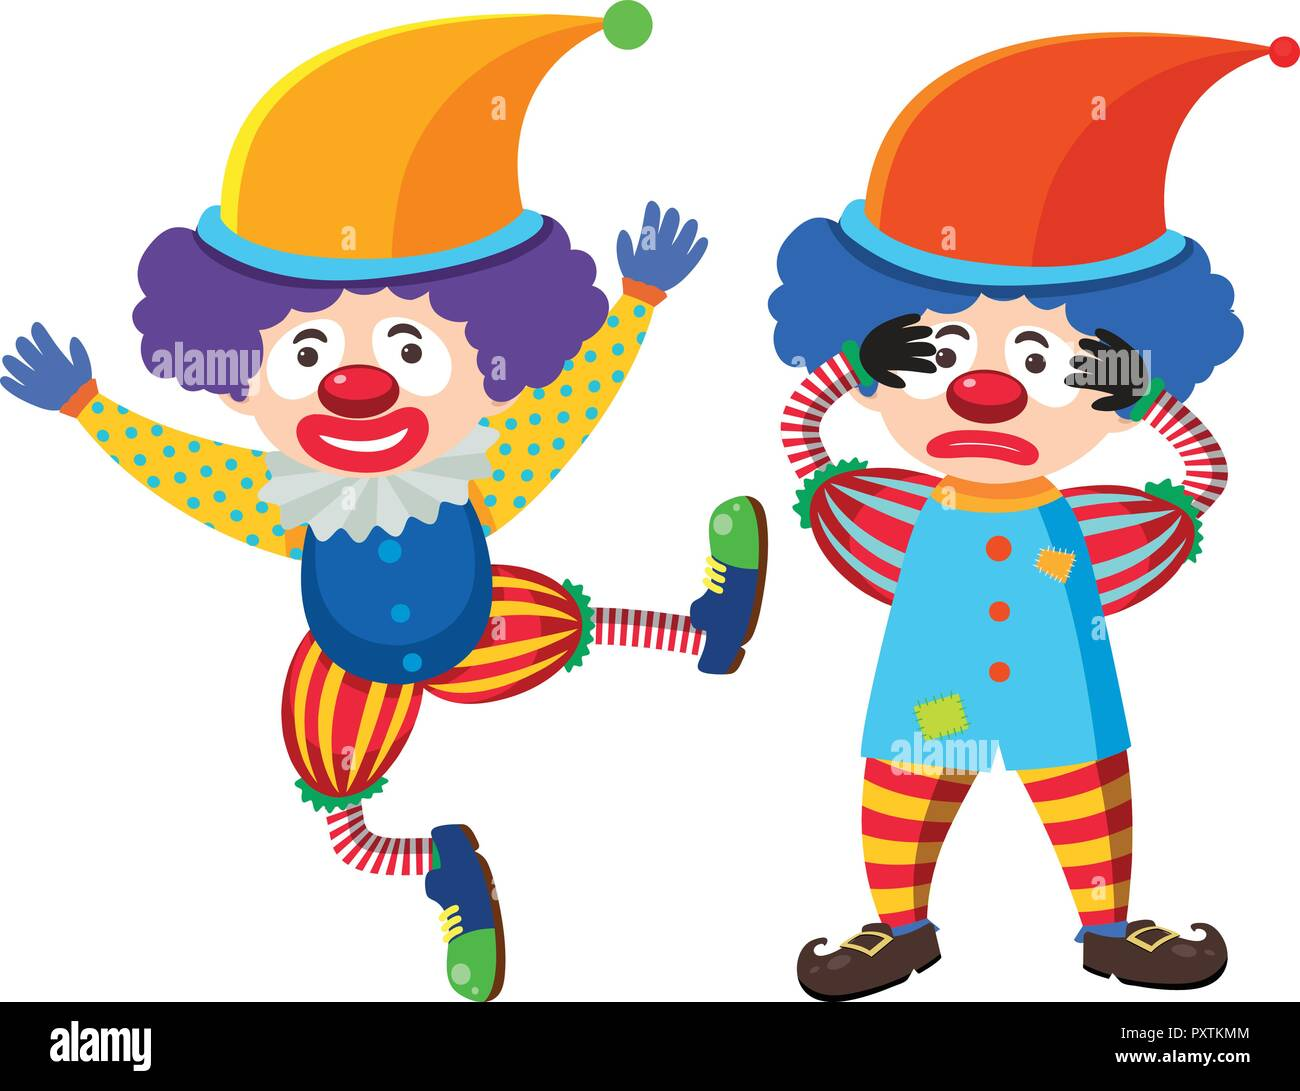 Two circus clowns in colorful costume illustration - Stock Vector